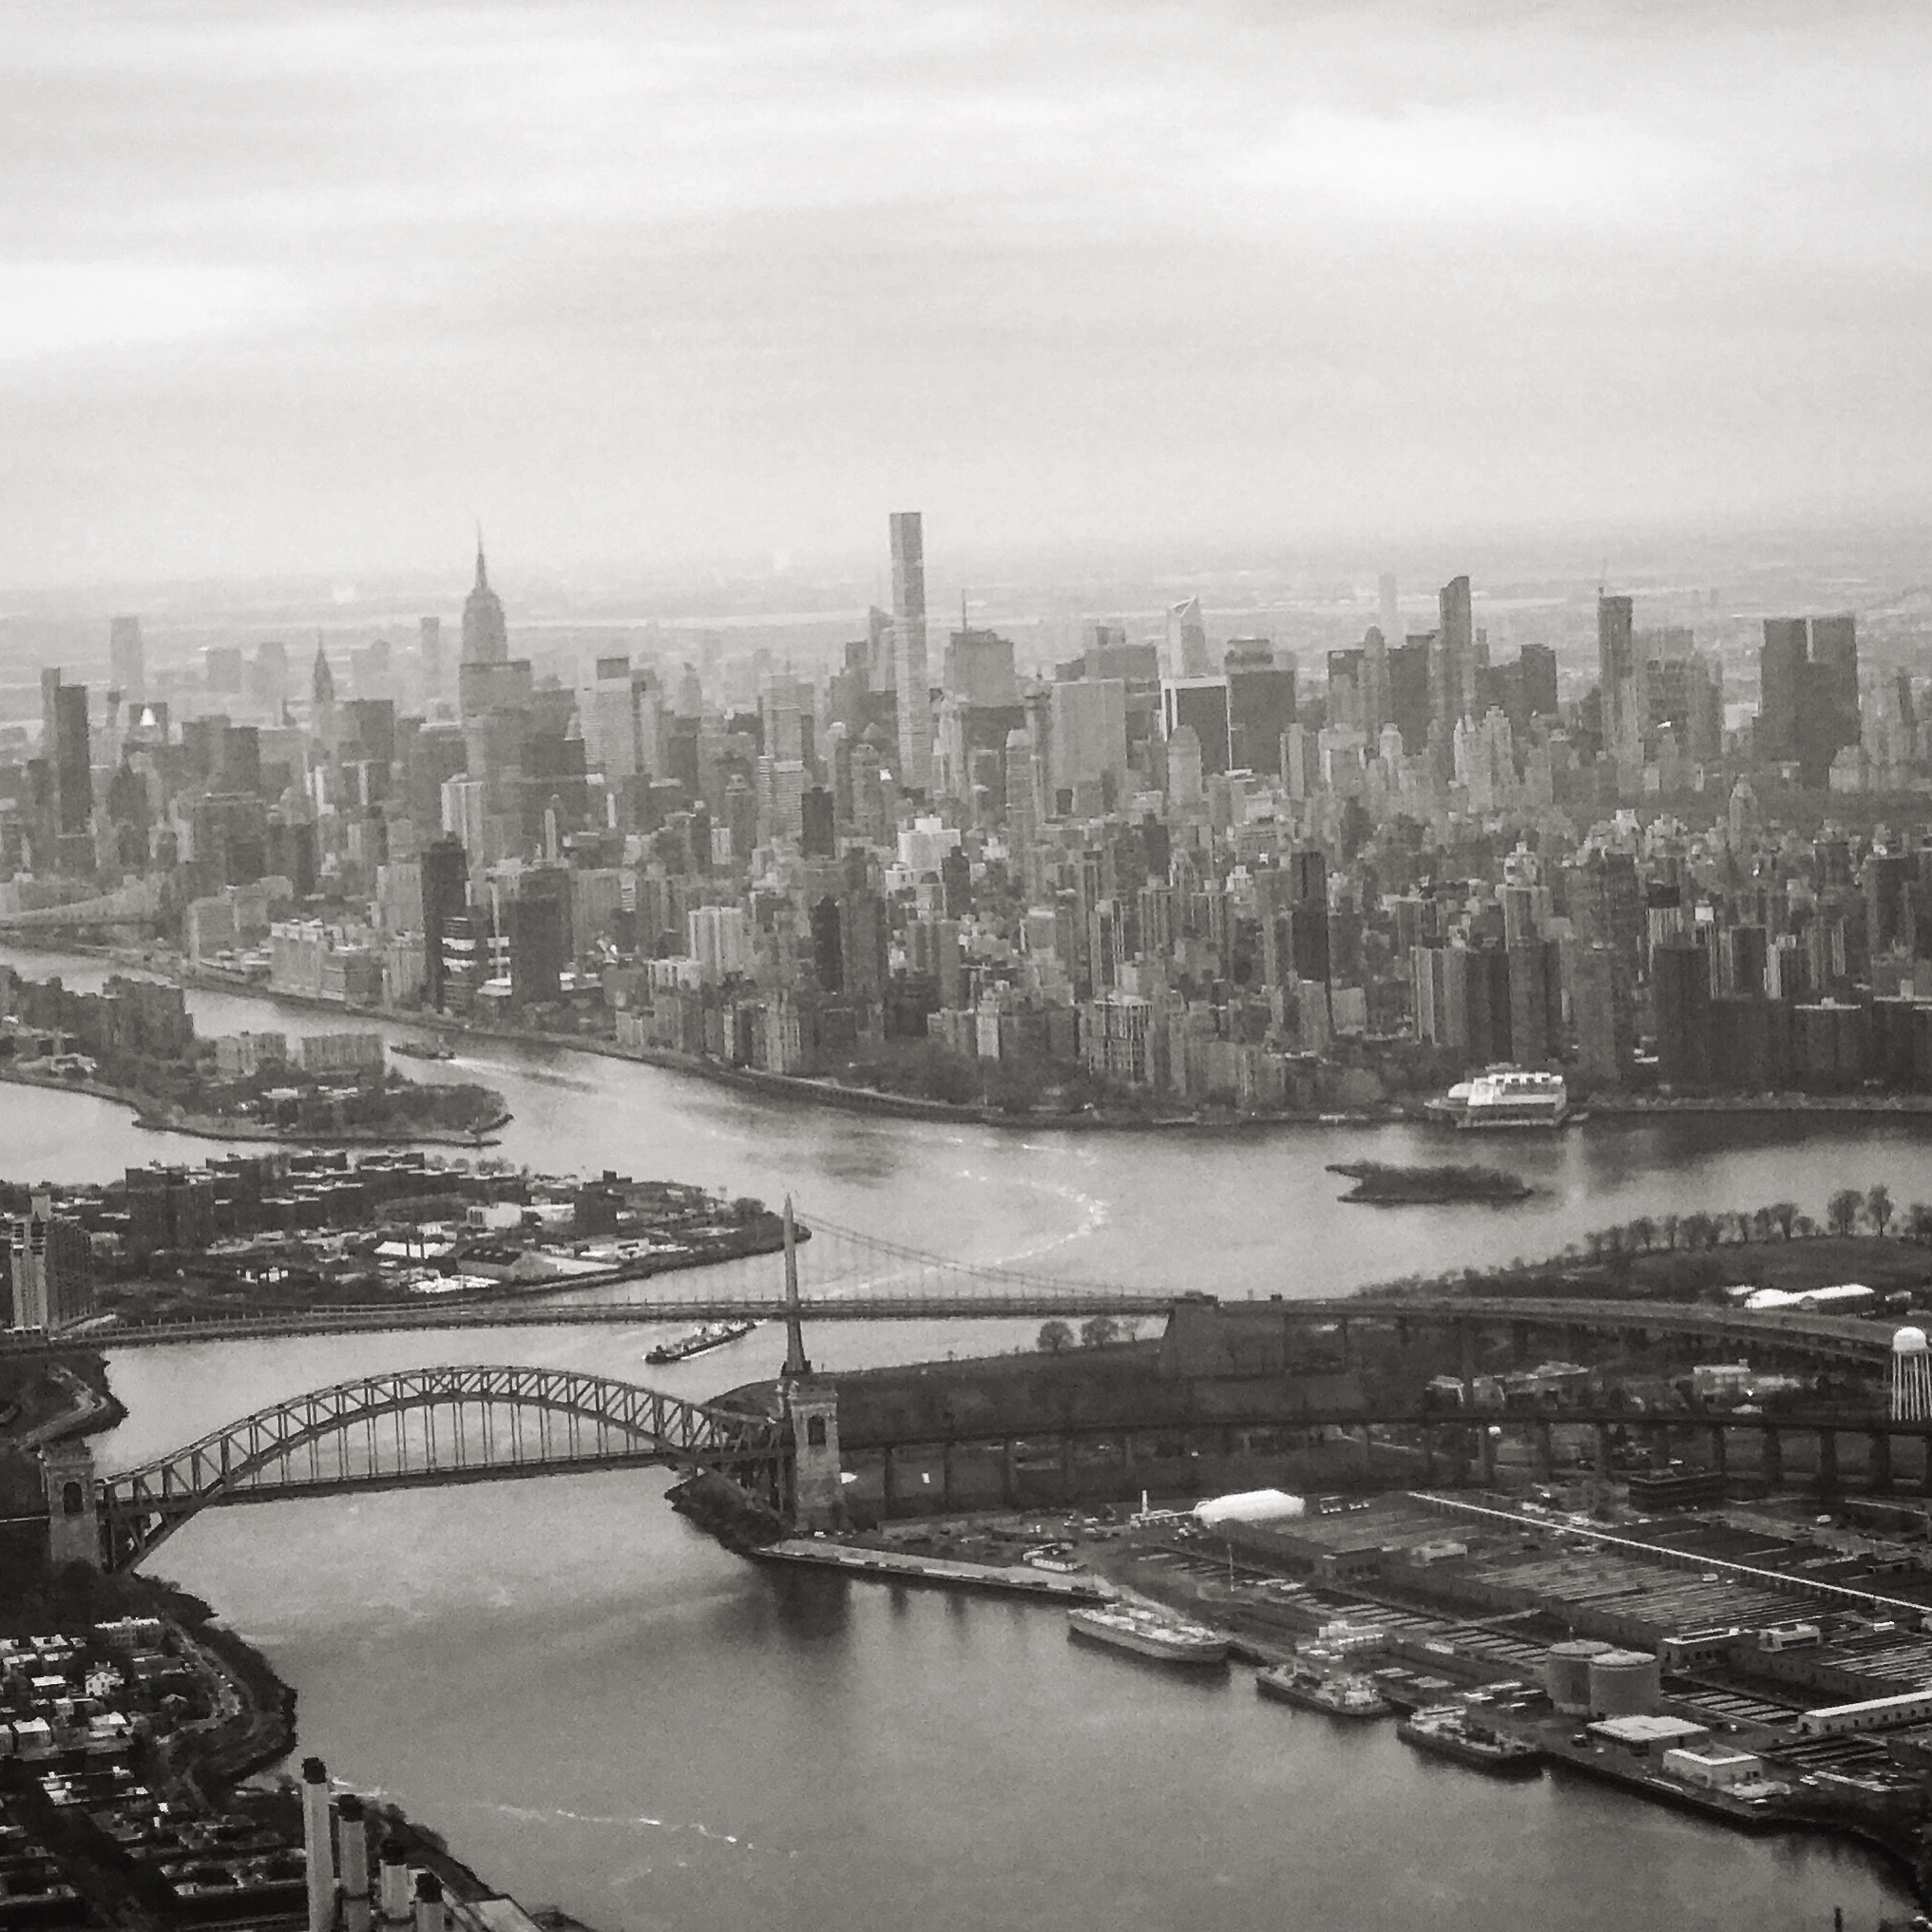 Departing LGA: Hell Gate and East River